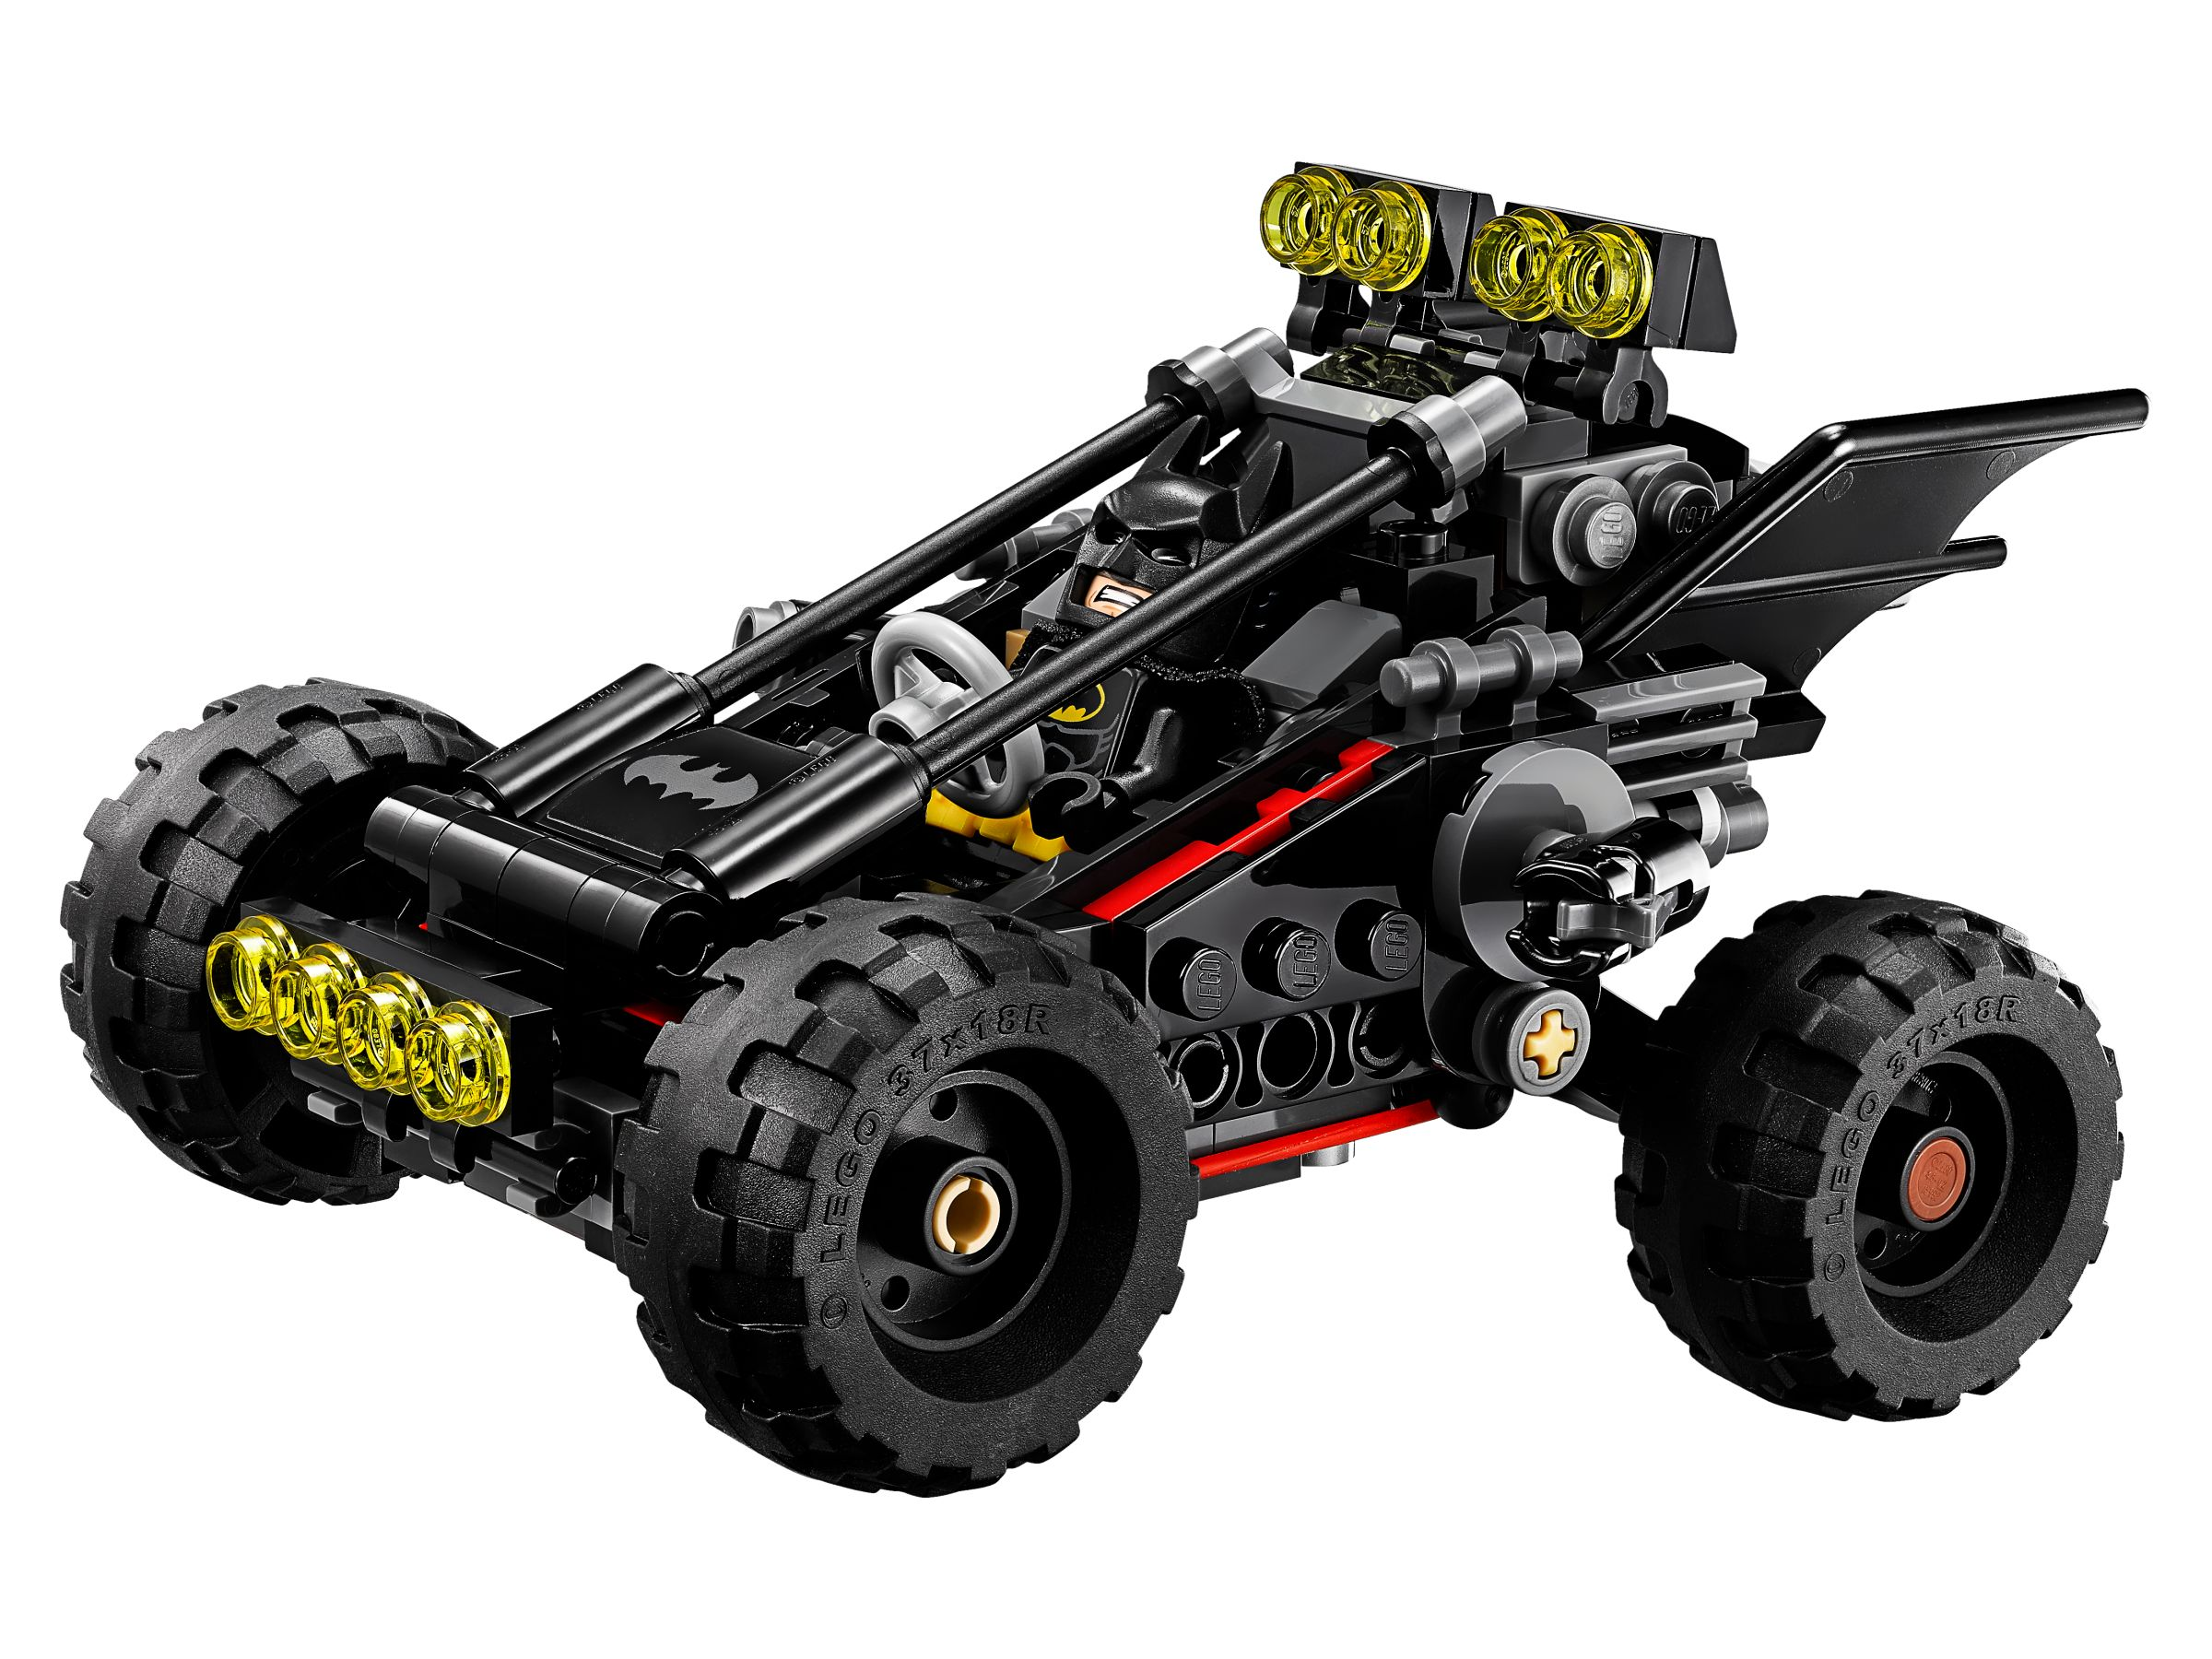 LEGO The LEGO Batman Movie 70918 Batman Dünenbuggy LEGO_70918_alt3.jpg